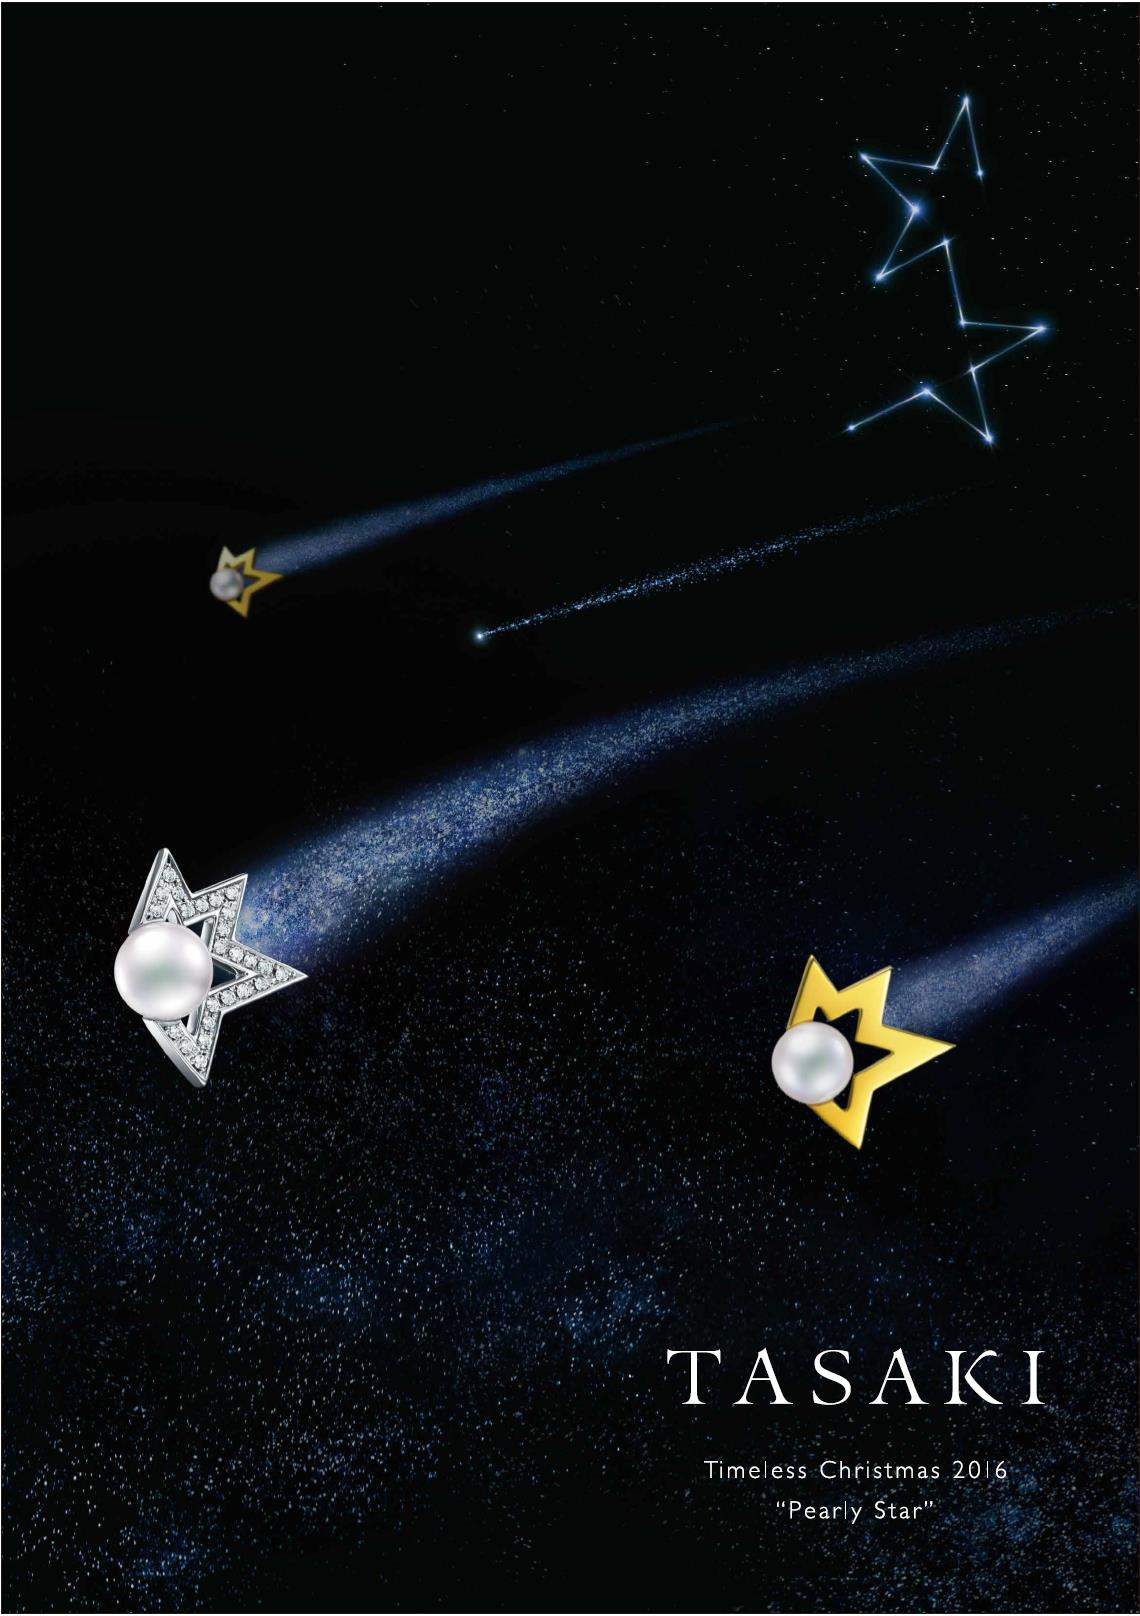 tasaki timeless christmas 2016 pearly star